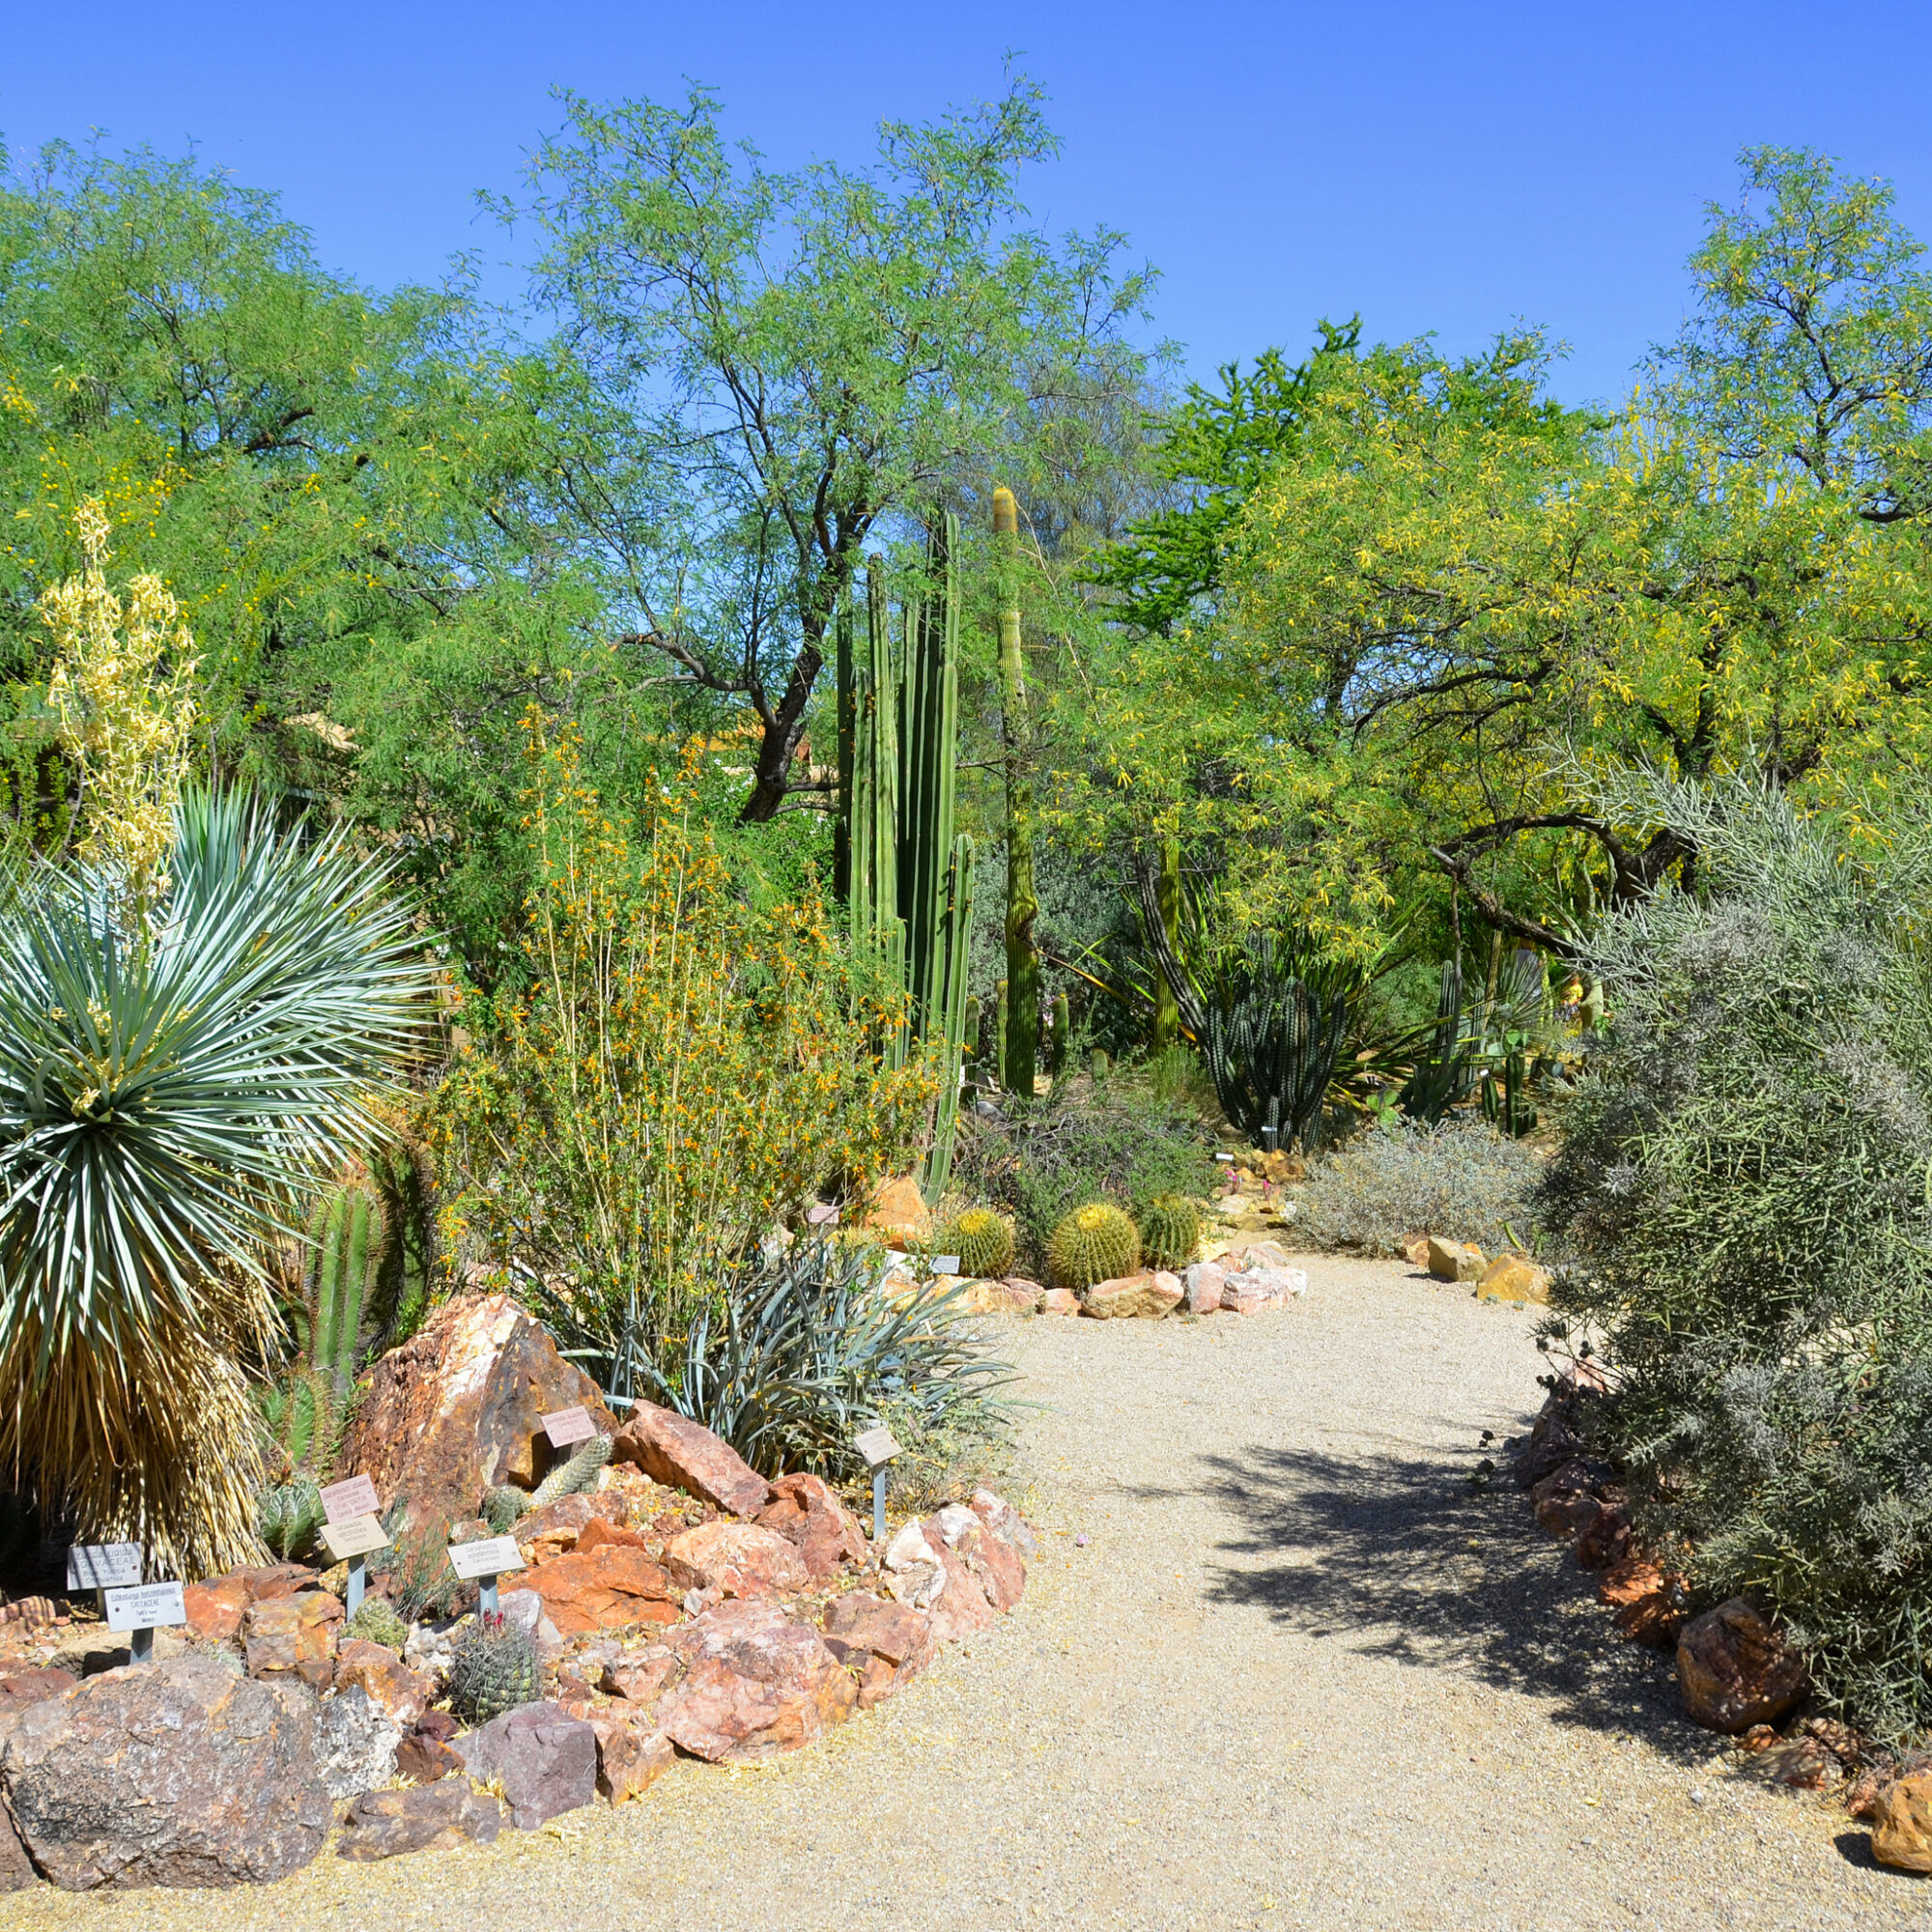 The Desert Botanical Garden in Phoenix, Arizona.